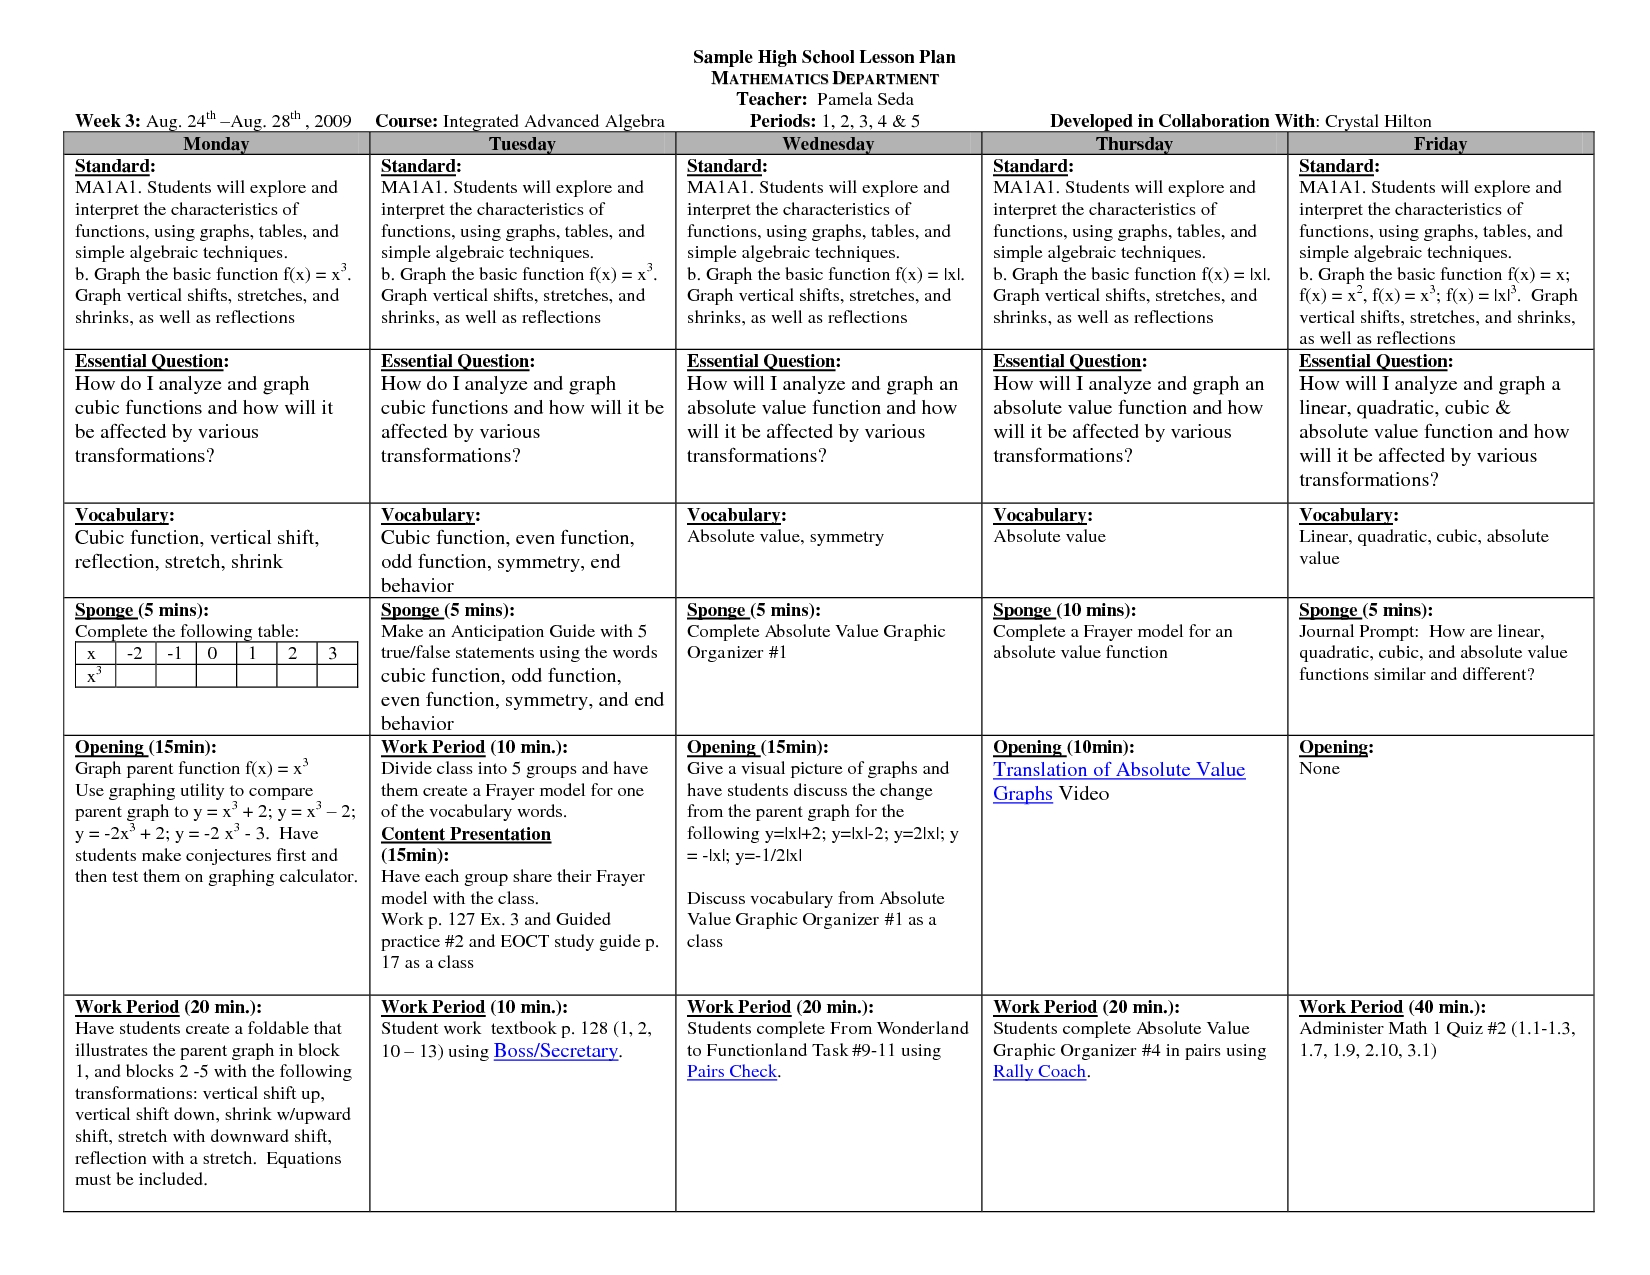 10 Fantastic Lesson Plan Ideas For Elementary math lesson plan template high schoolsample hs math weekly lesson